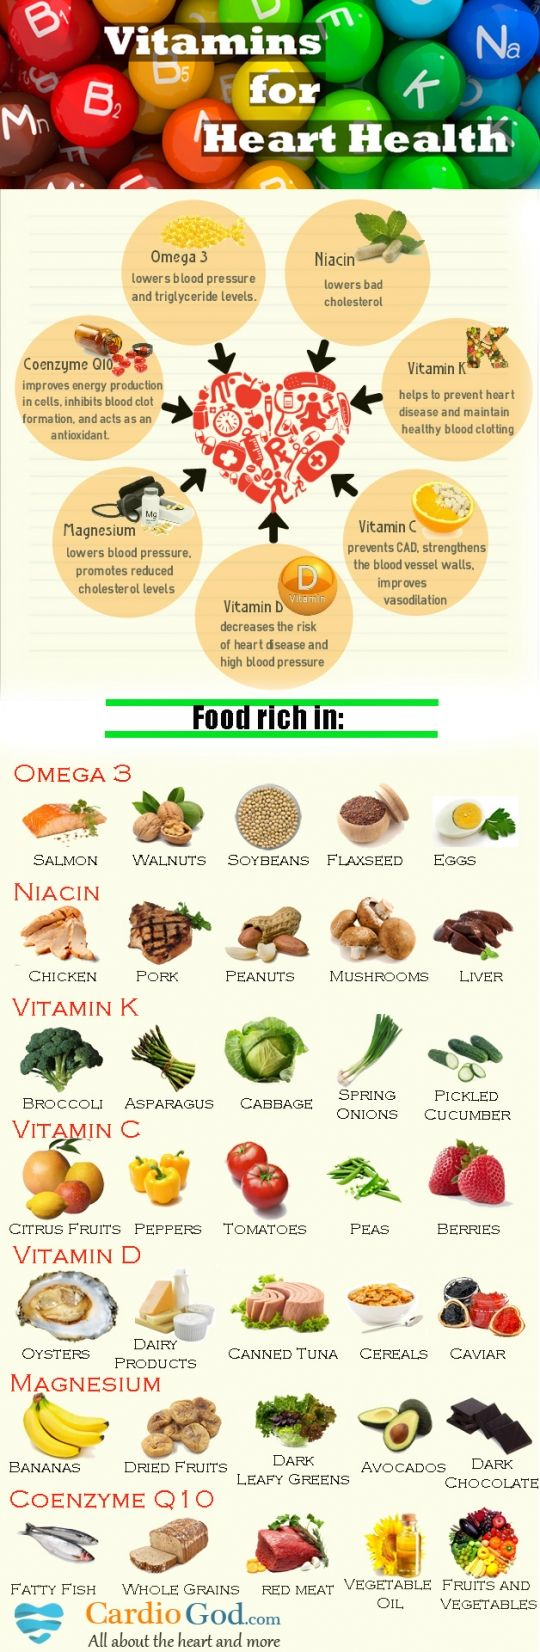 Vitamins good for #HeartHealth